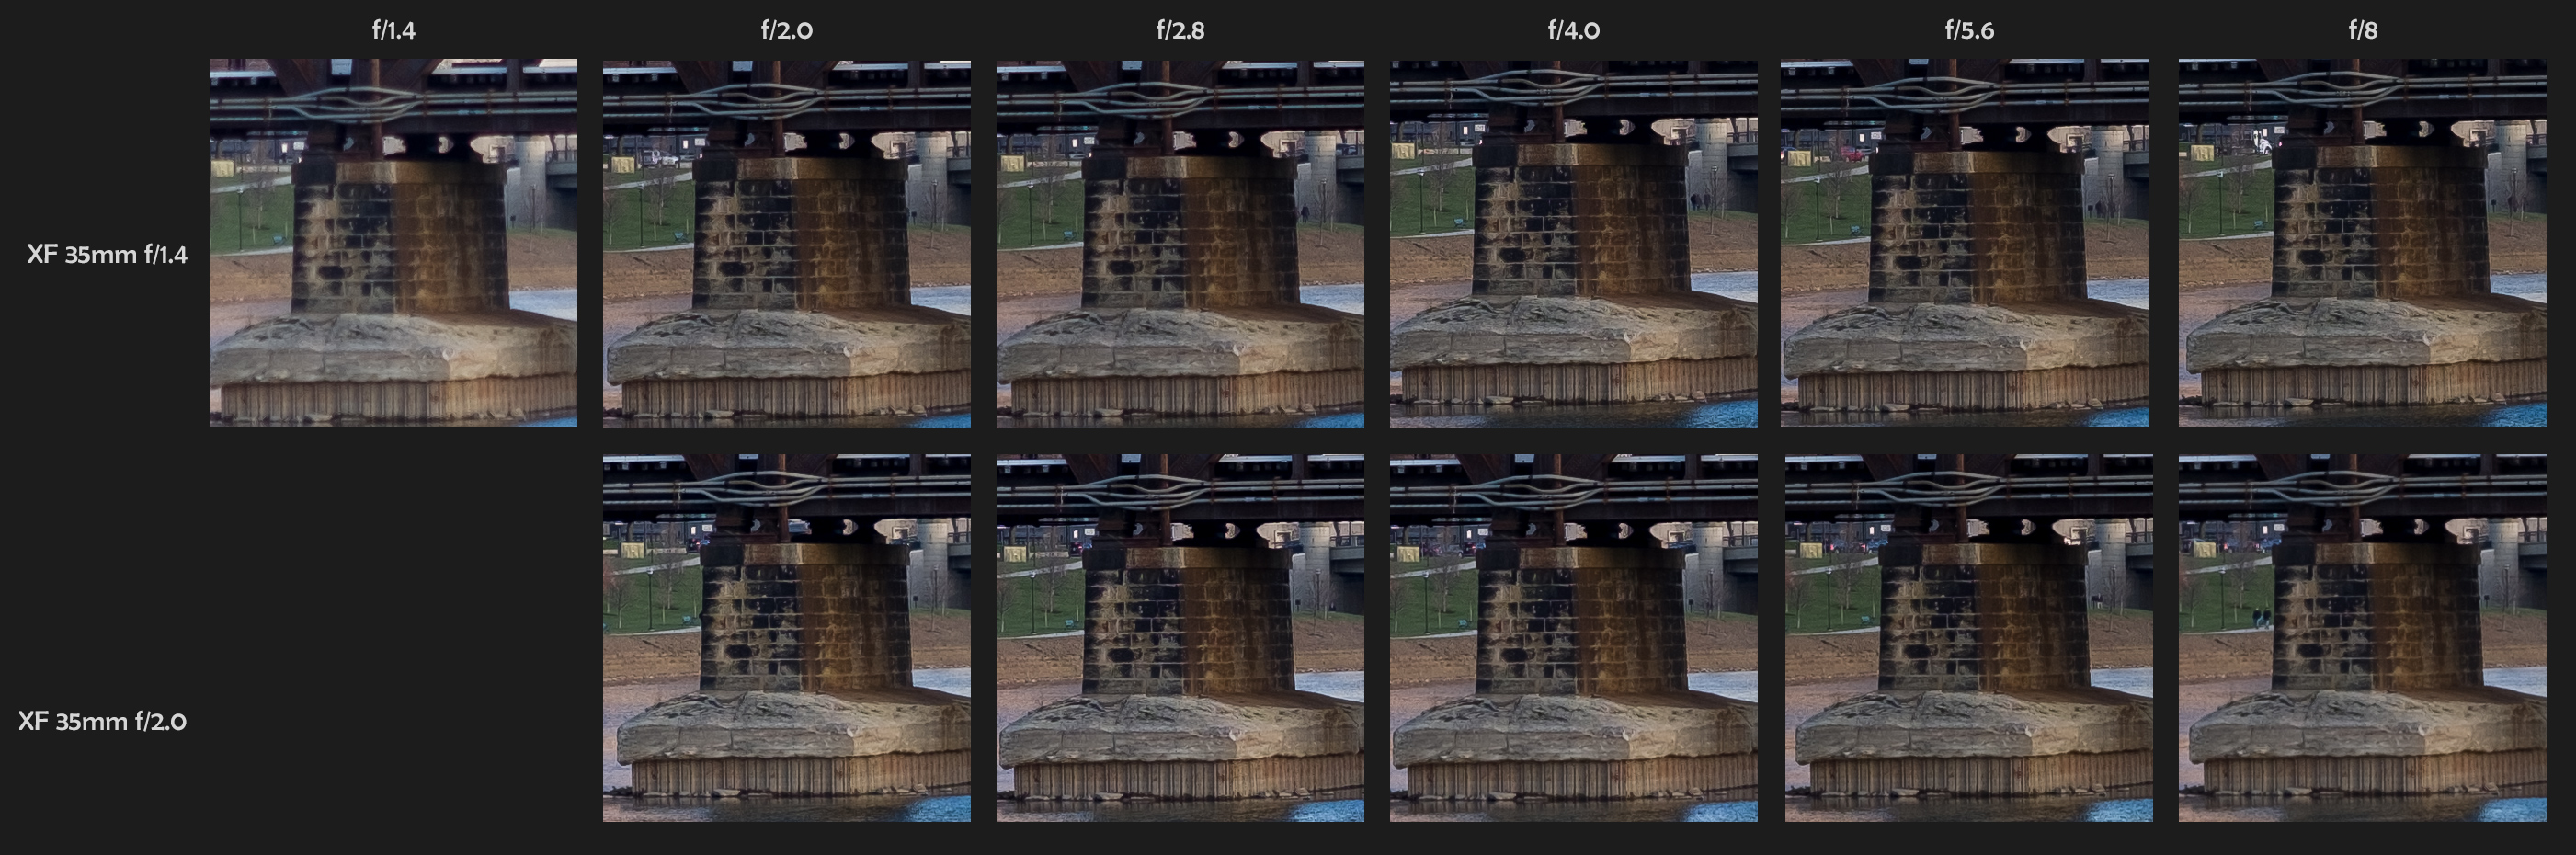 XF 35mm f/1.4 vs XF 35mm f/2 - 100% Center Crops (Click to Enlarge)